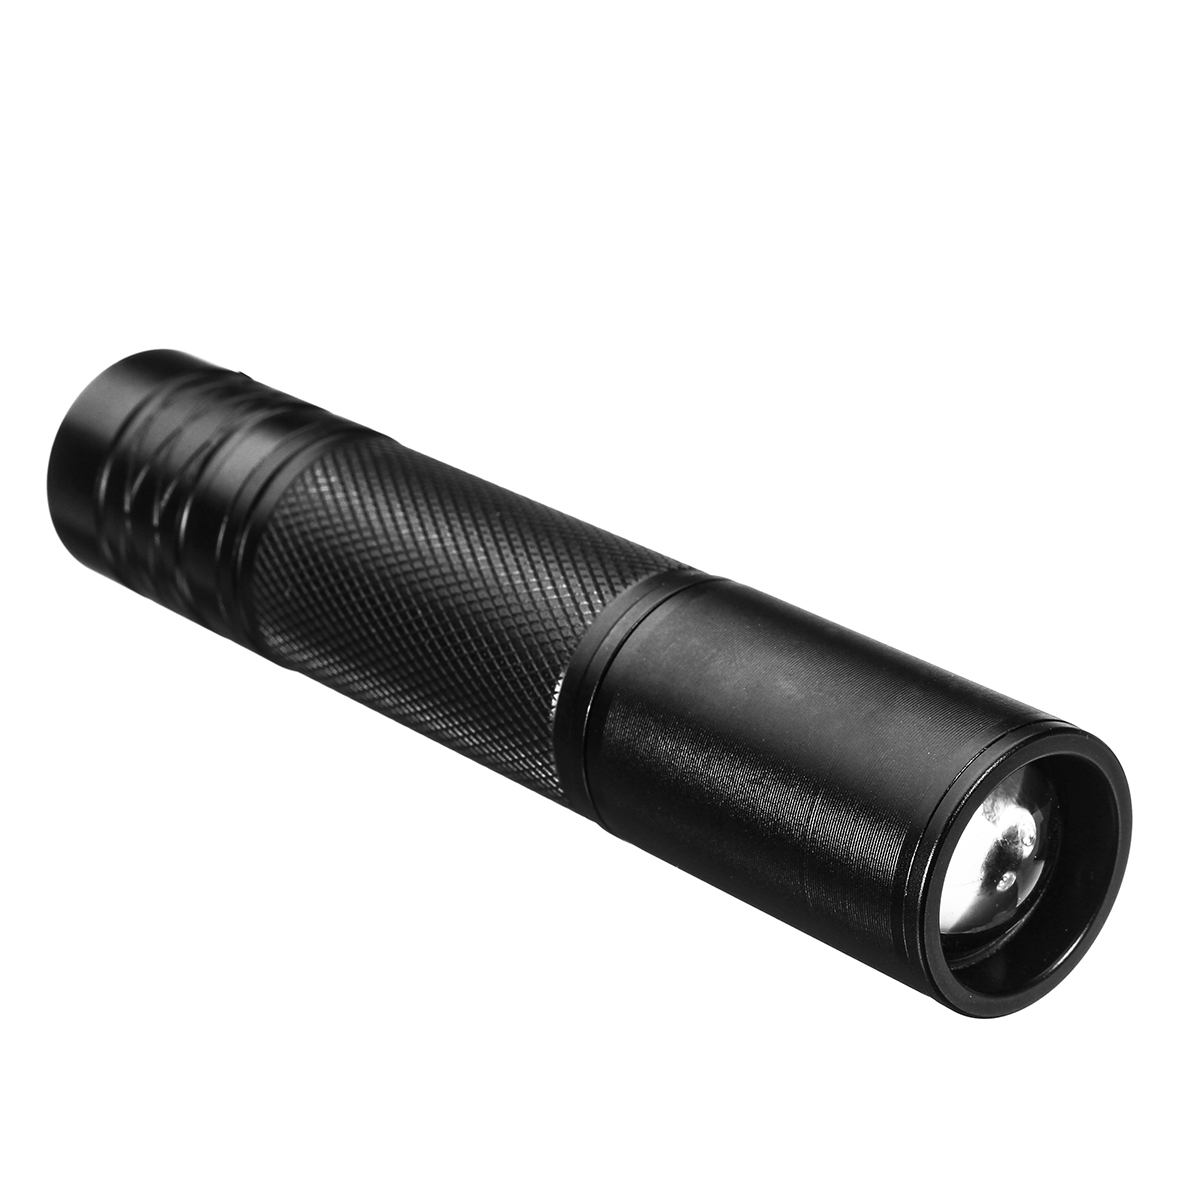 5W 850nm Infrared IR LED Flashlight Zoomable Night Vision Scope Outdoor Torch 18650